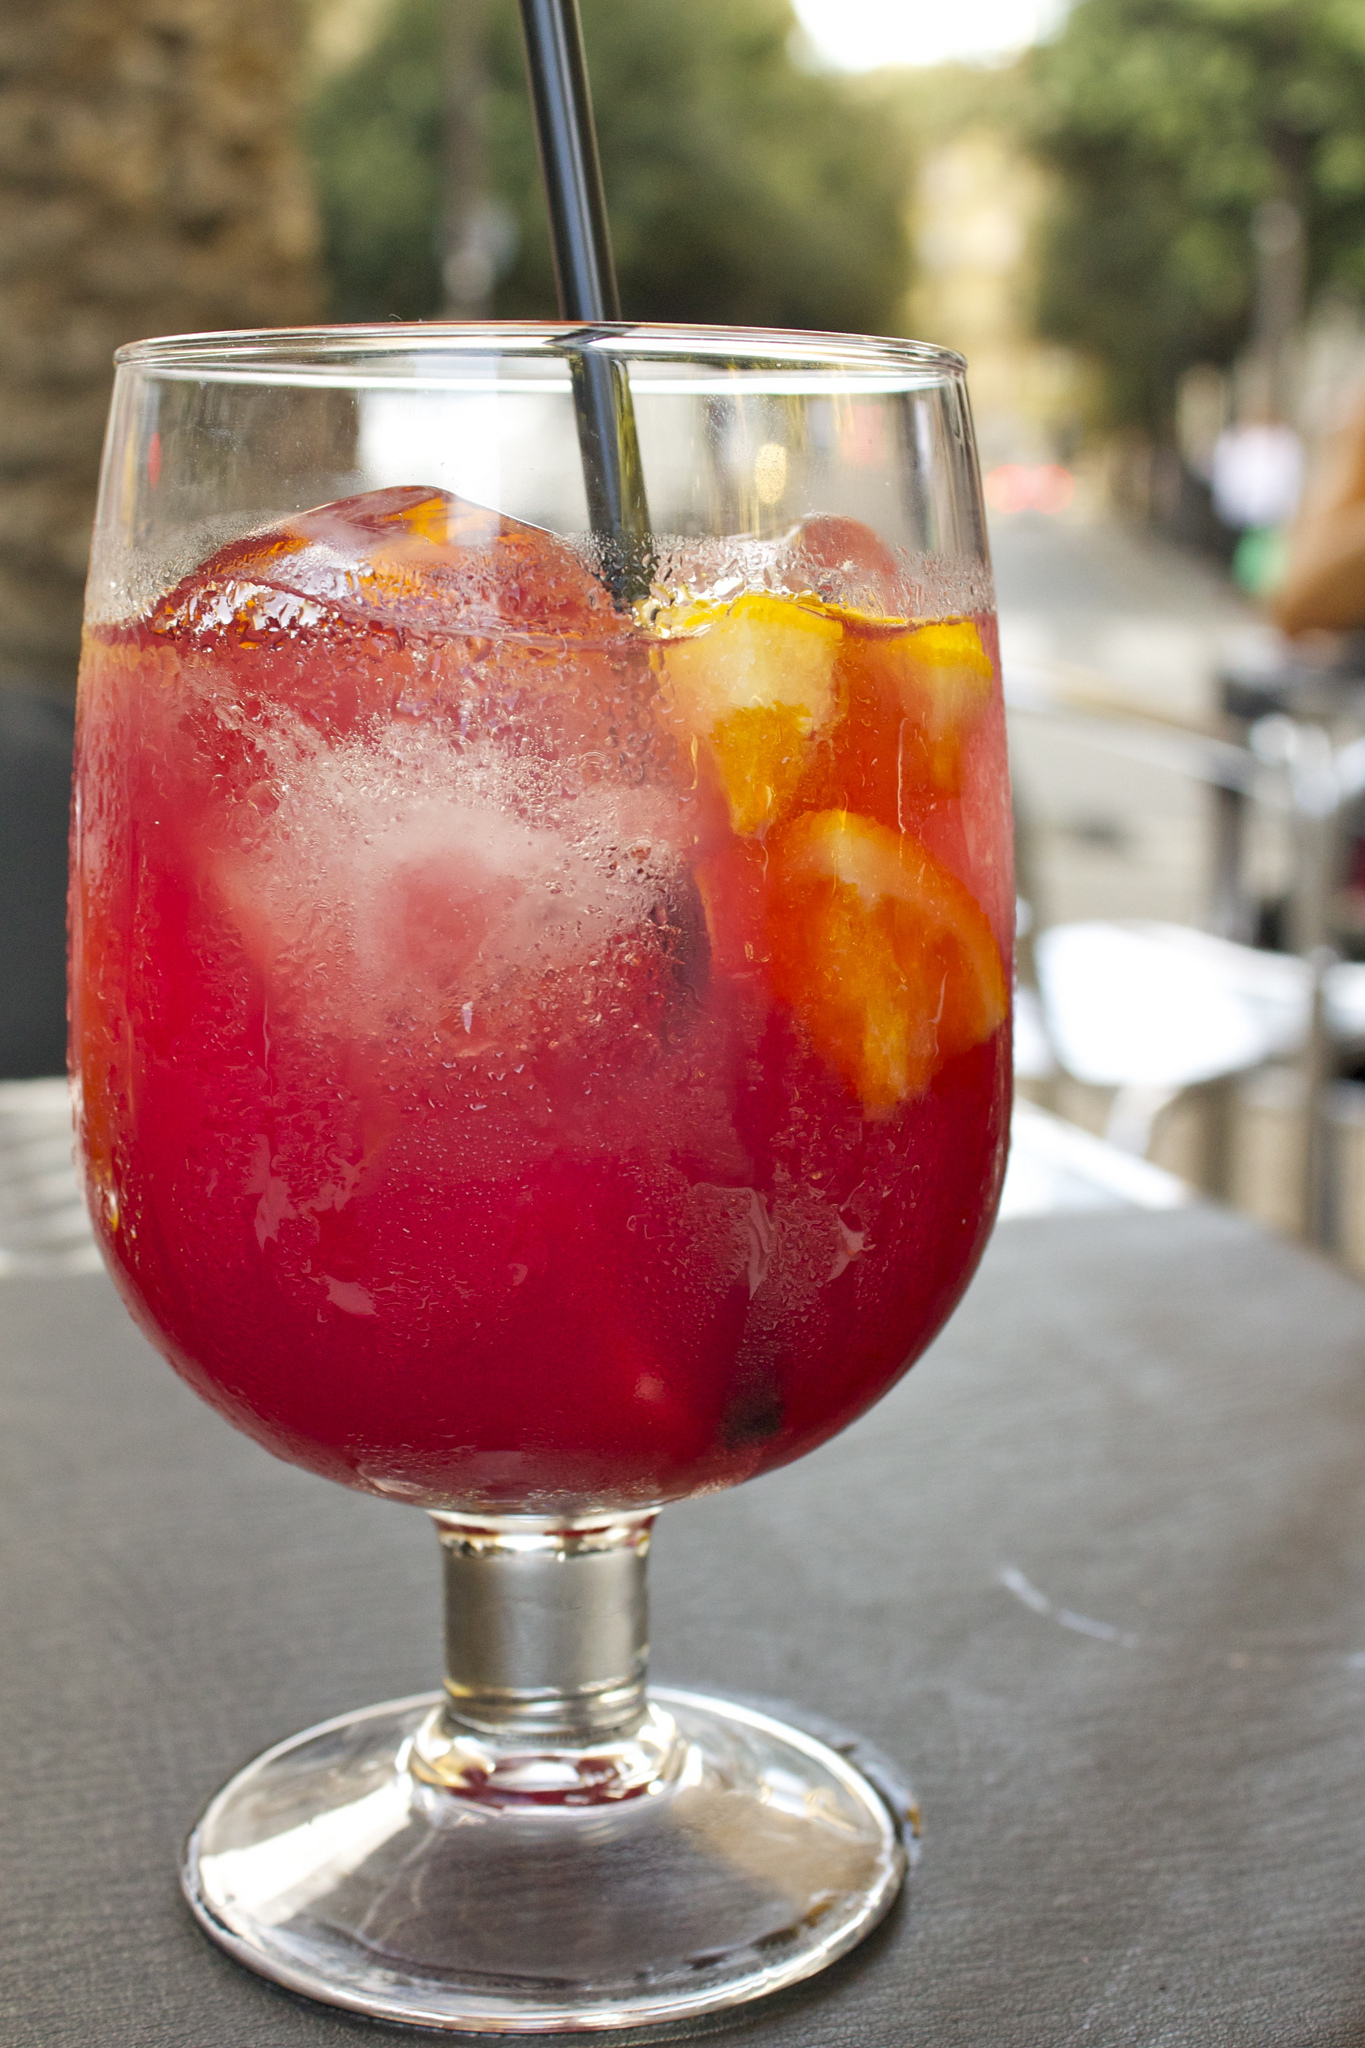 ELZABURU, Intellectual Property: A toast with sangria to the new EU ...